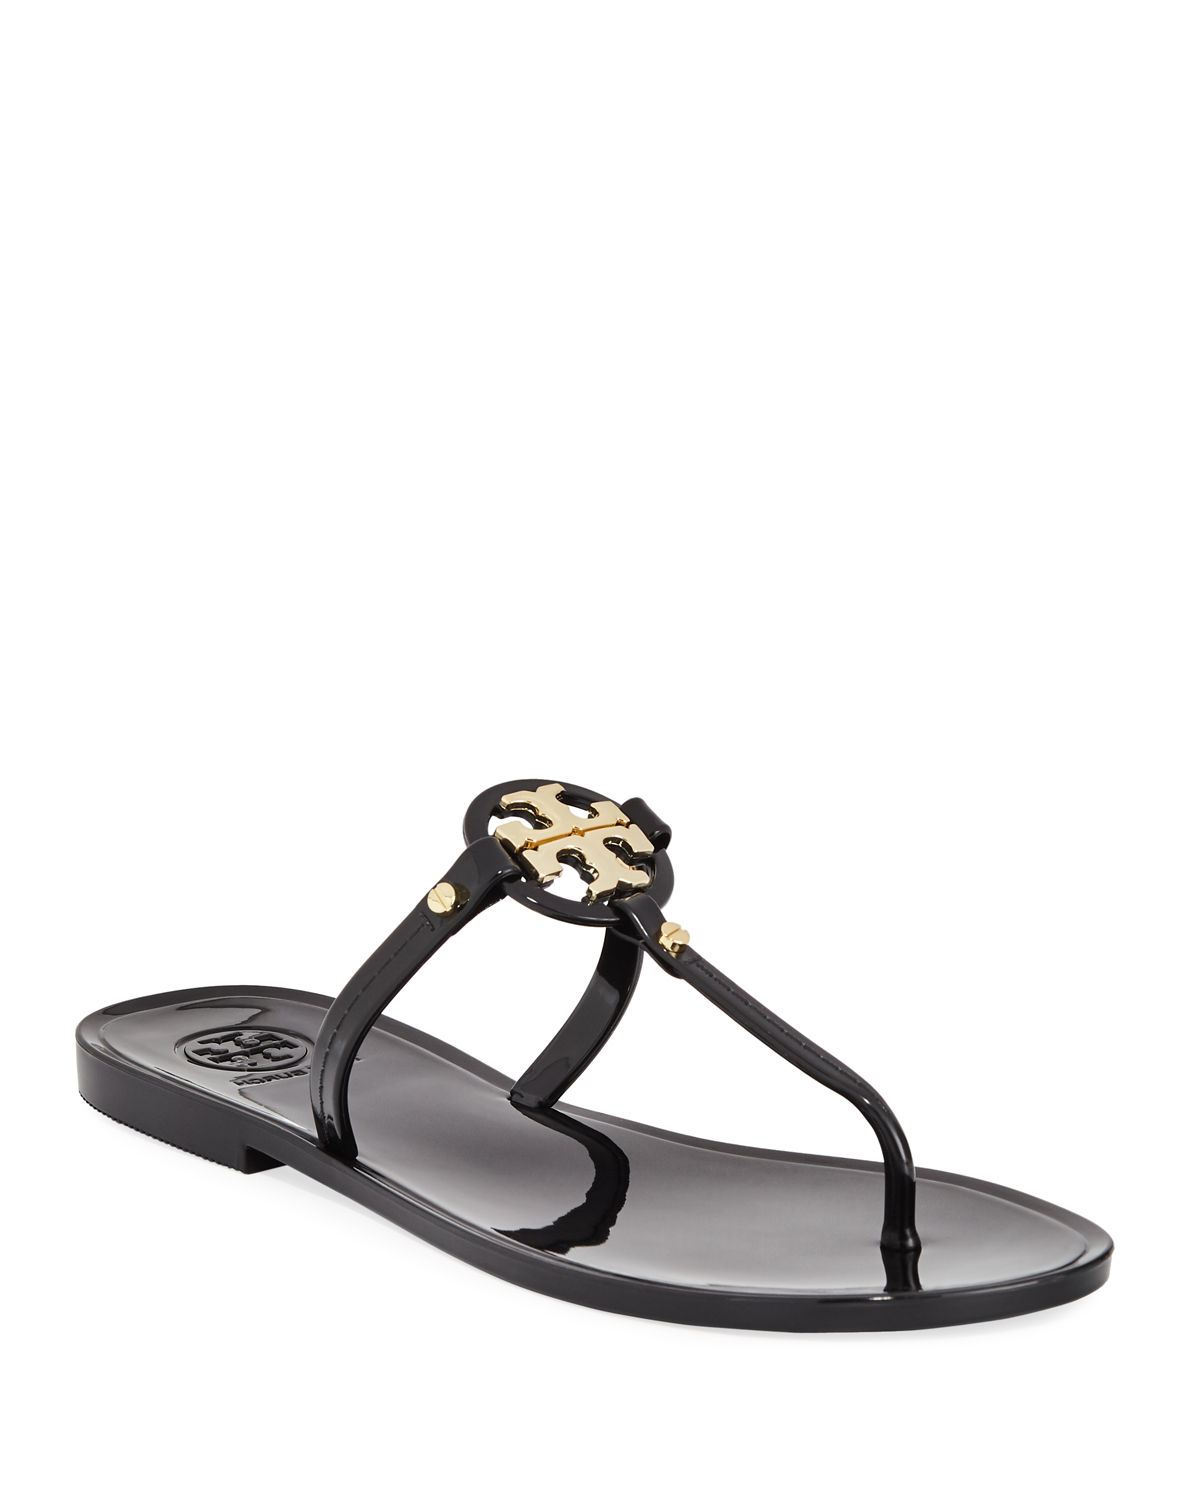 b207a9407 Tory Burch Mini Miller Flat Jelly Thong Sandals